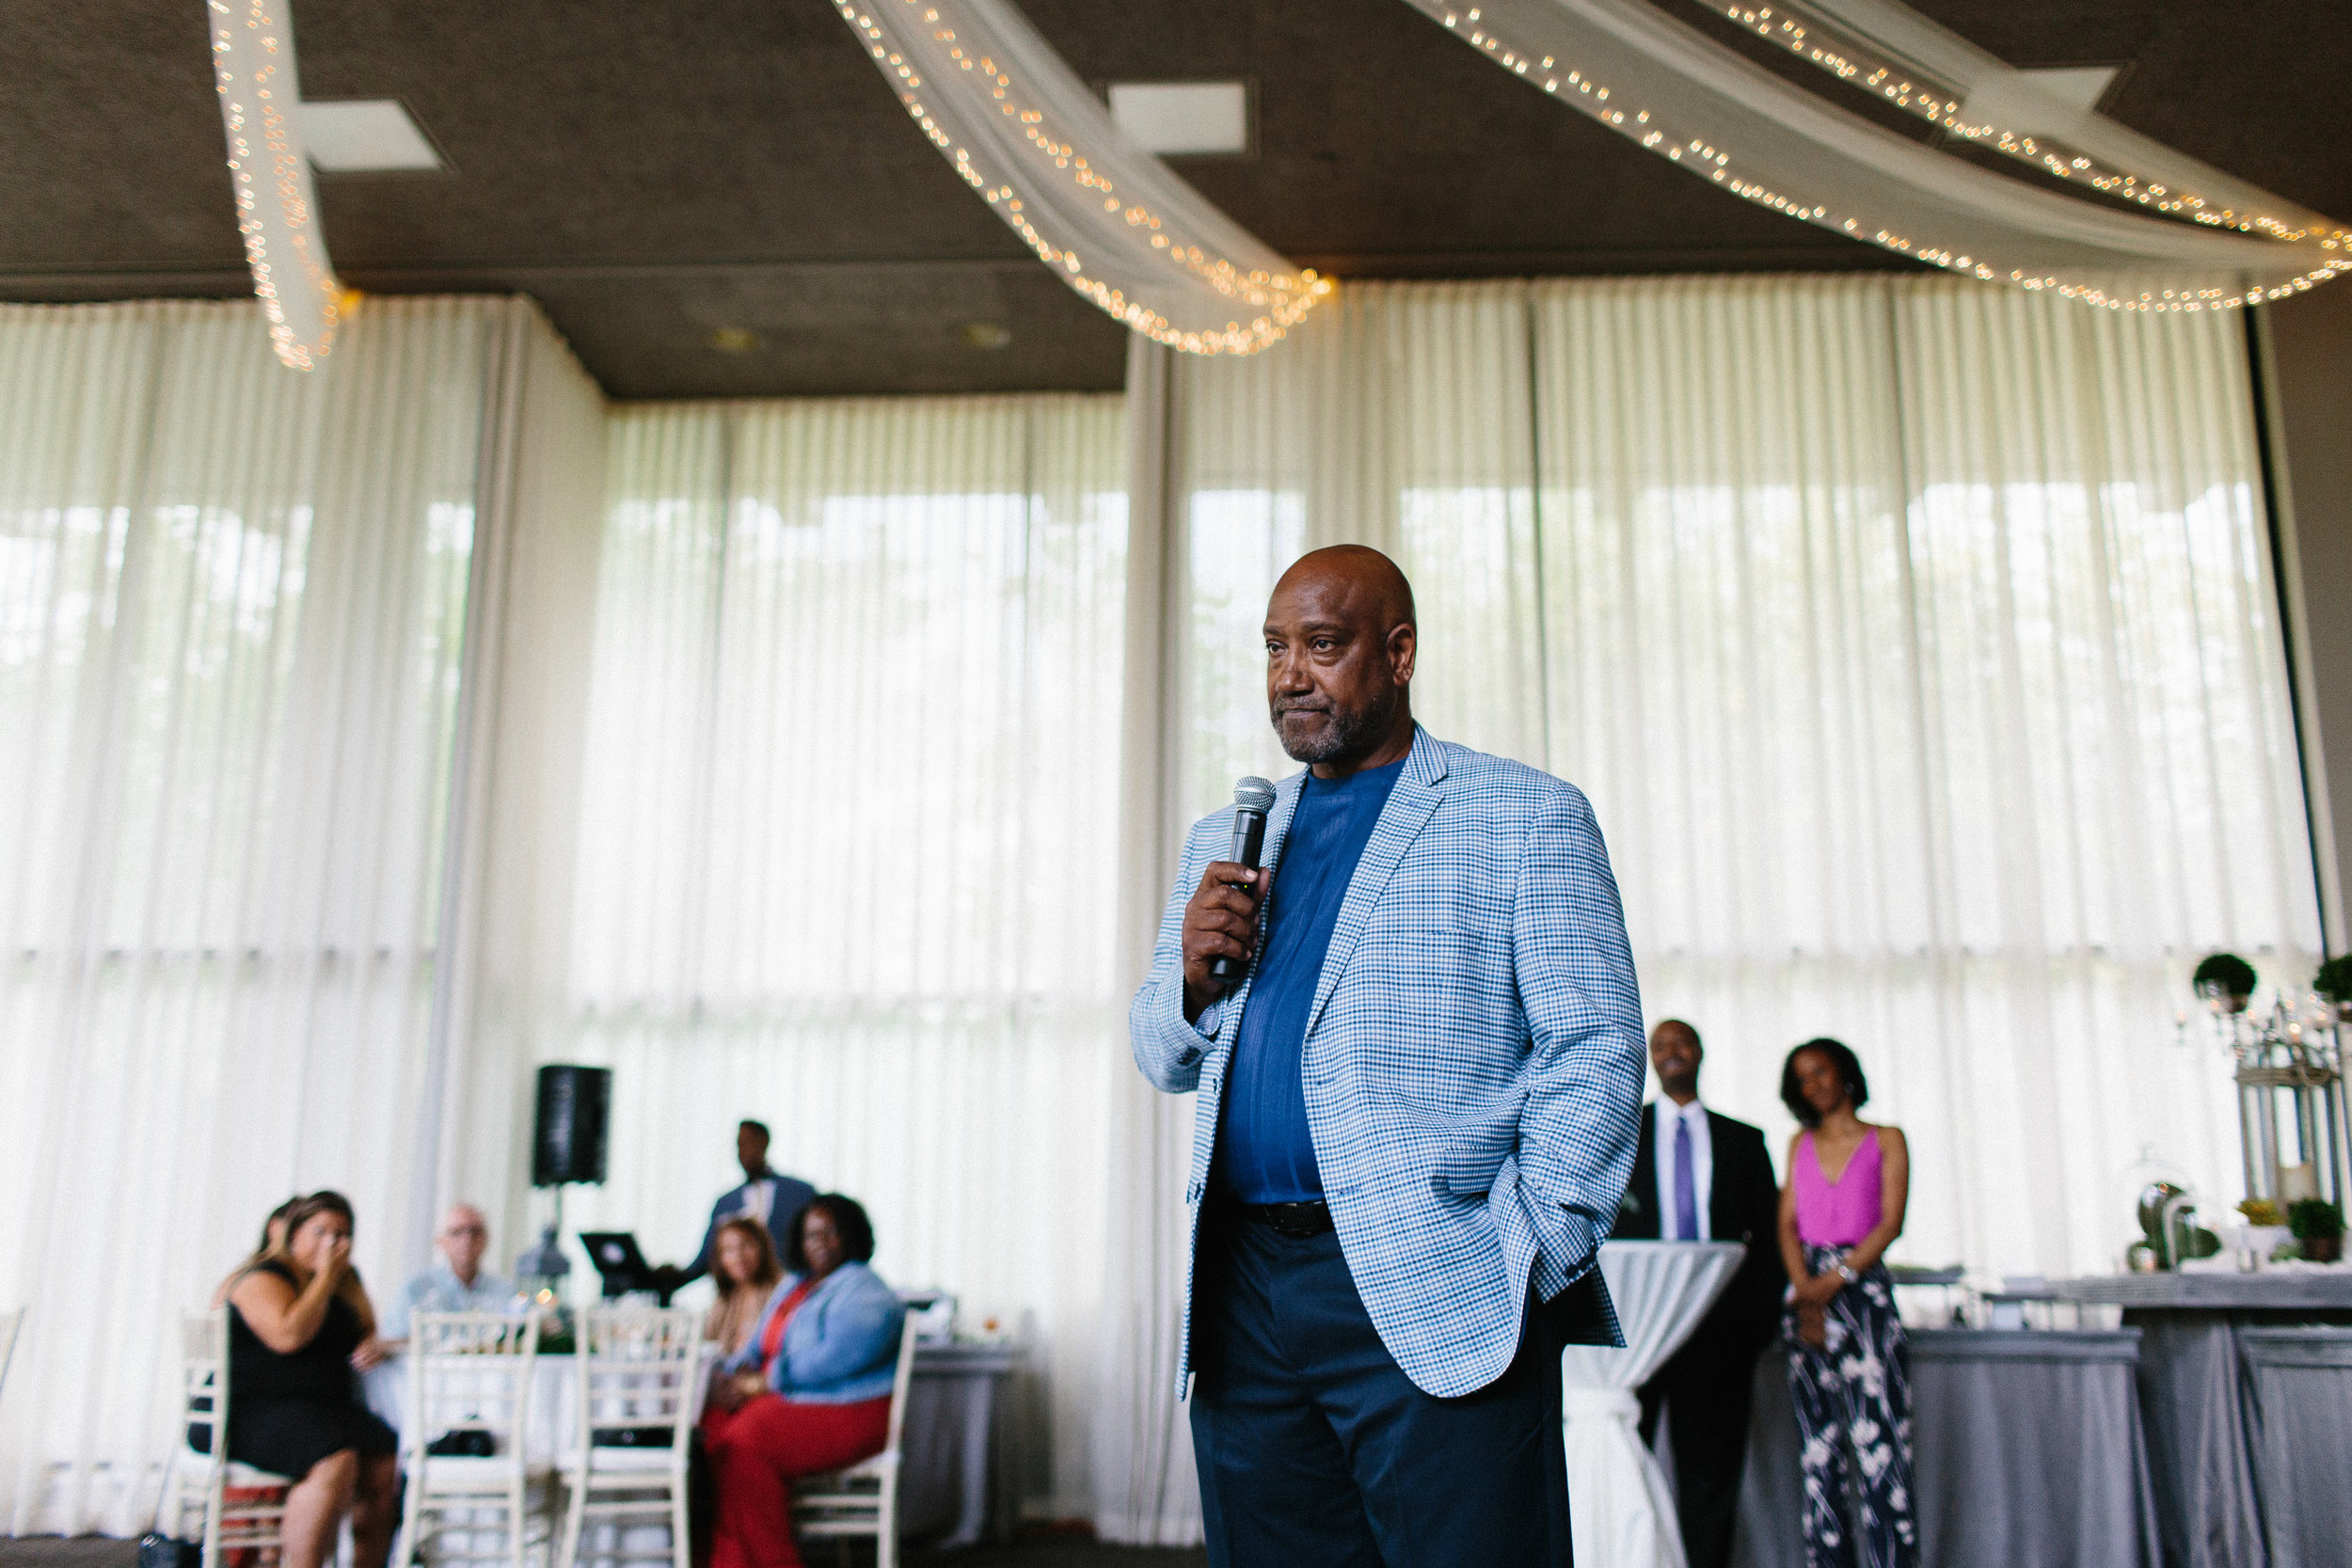 the_atrium_wedding_atlanta_norcross_lifestyle_photographers_lgbtq_1387.jpg